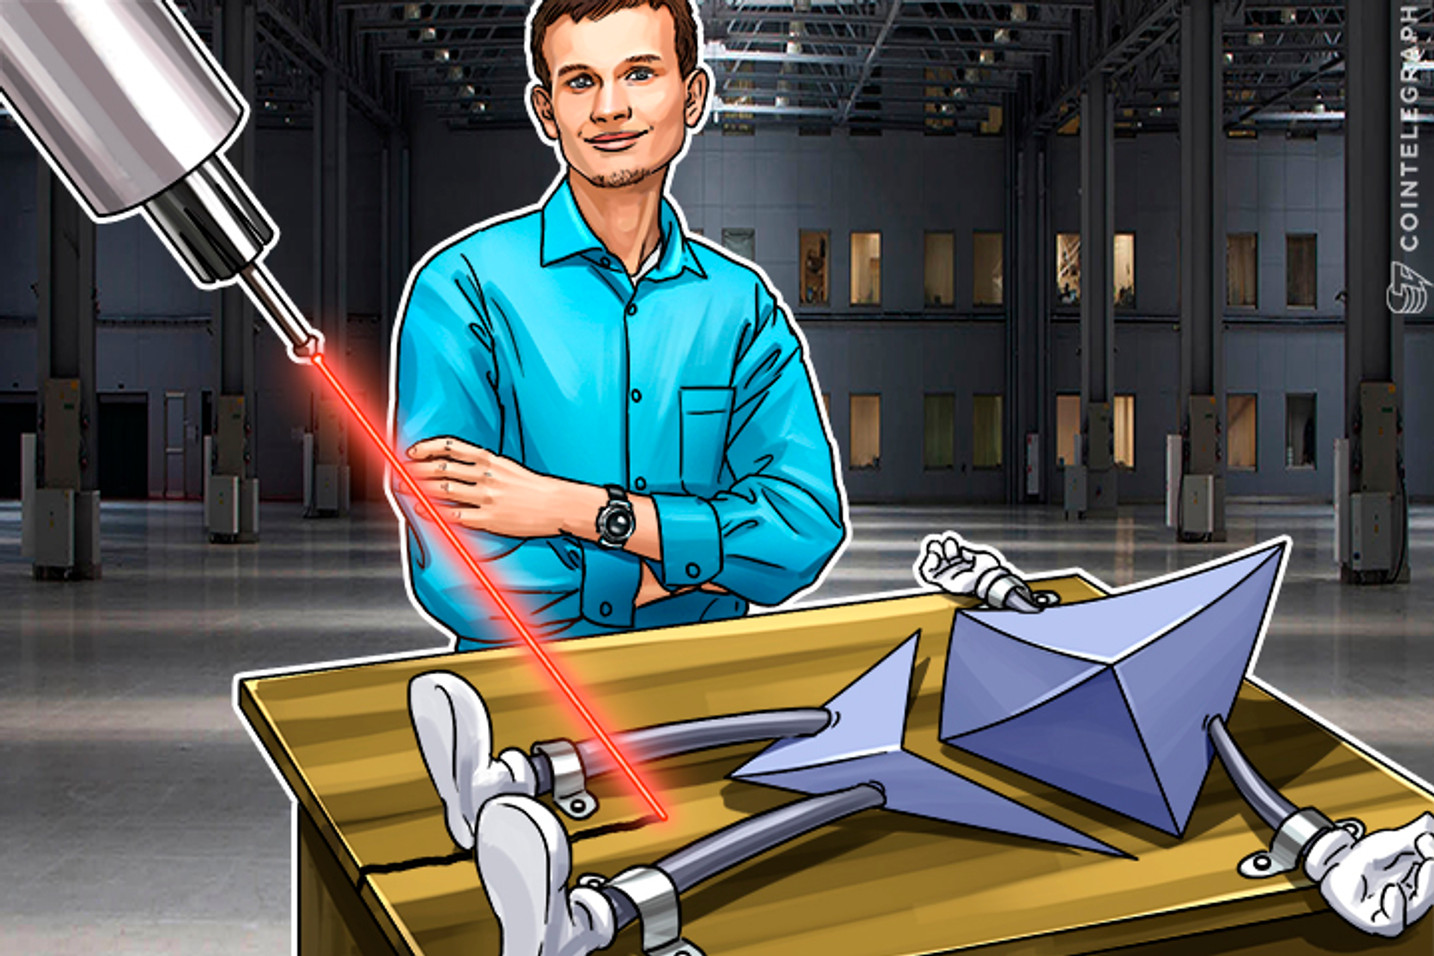 Ethereum Hard Fork No. 4 Has Arrived as DOS Attacks Intensify